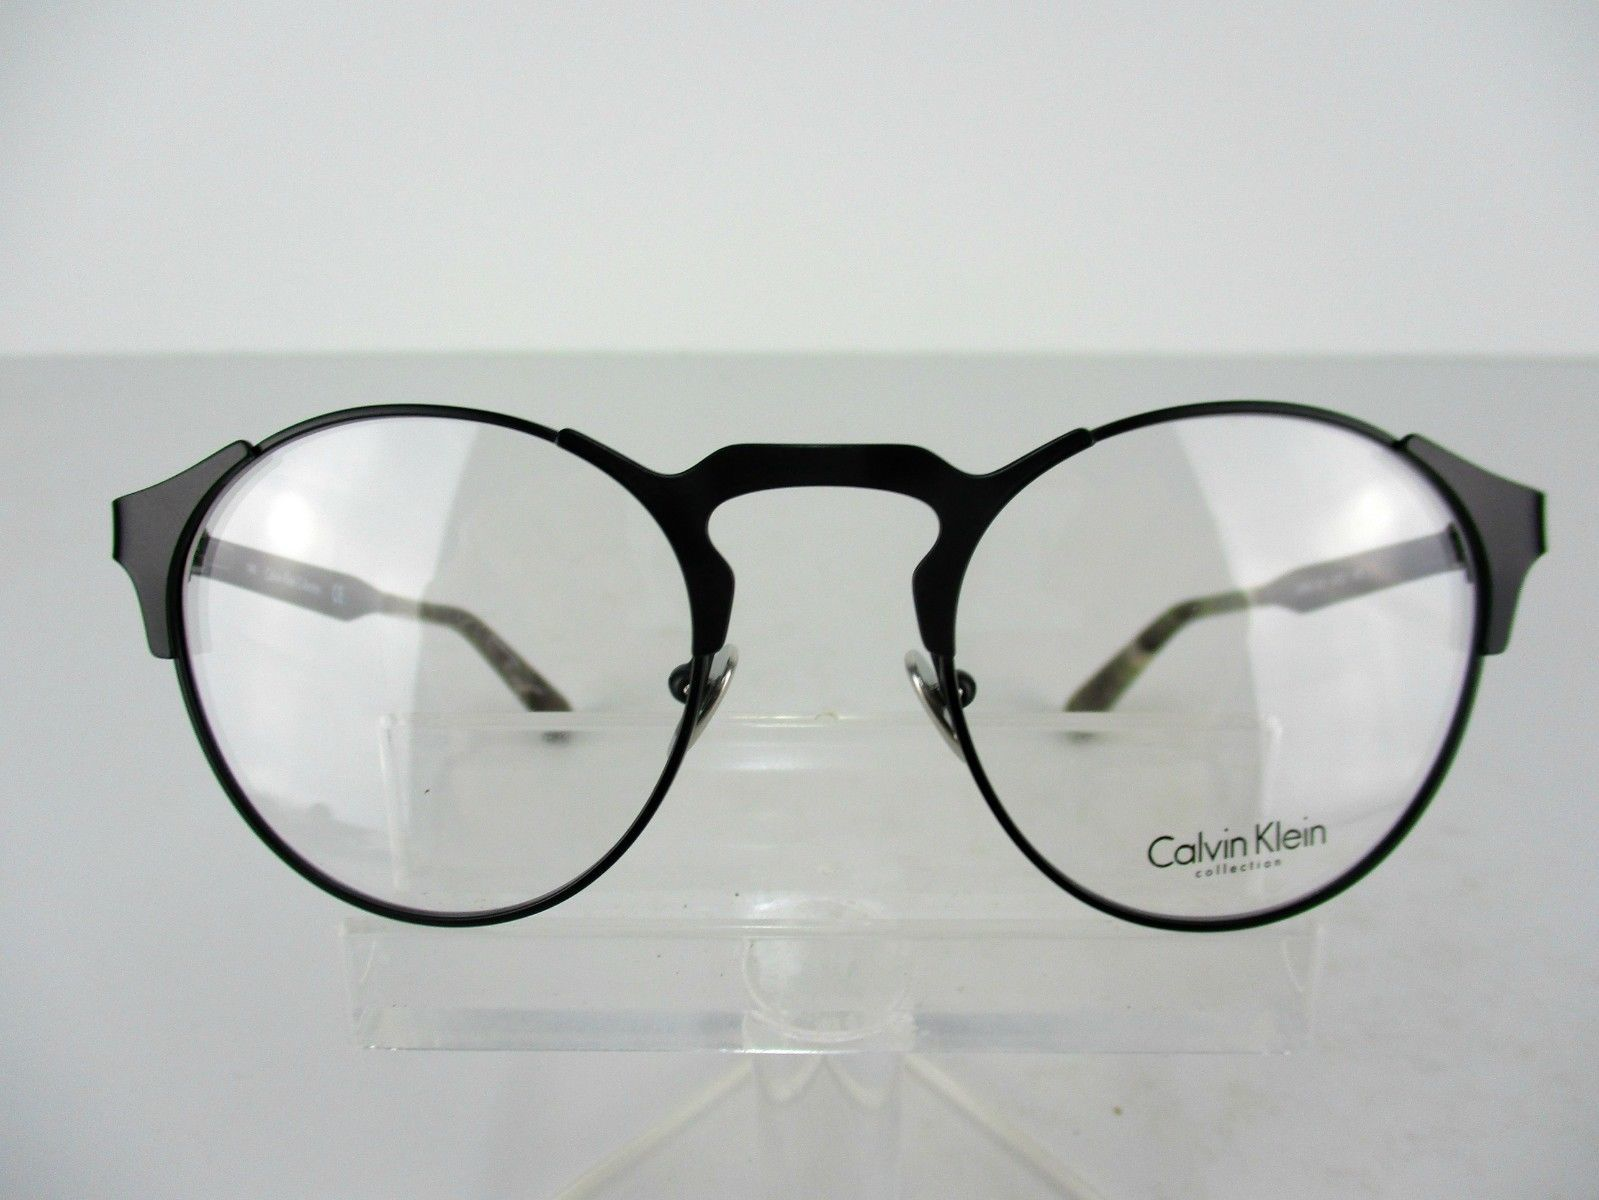 eed0997b8b3 Calvin Klein Ck 8042 (001) Black 49 X 21 140 and 50 similar items